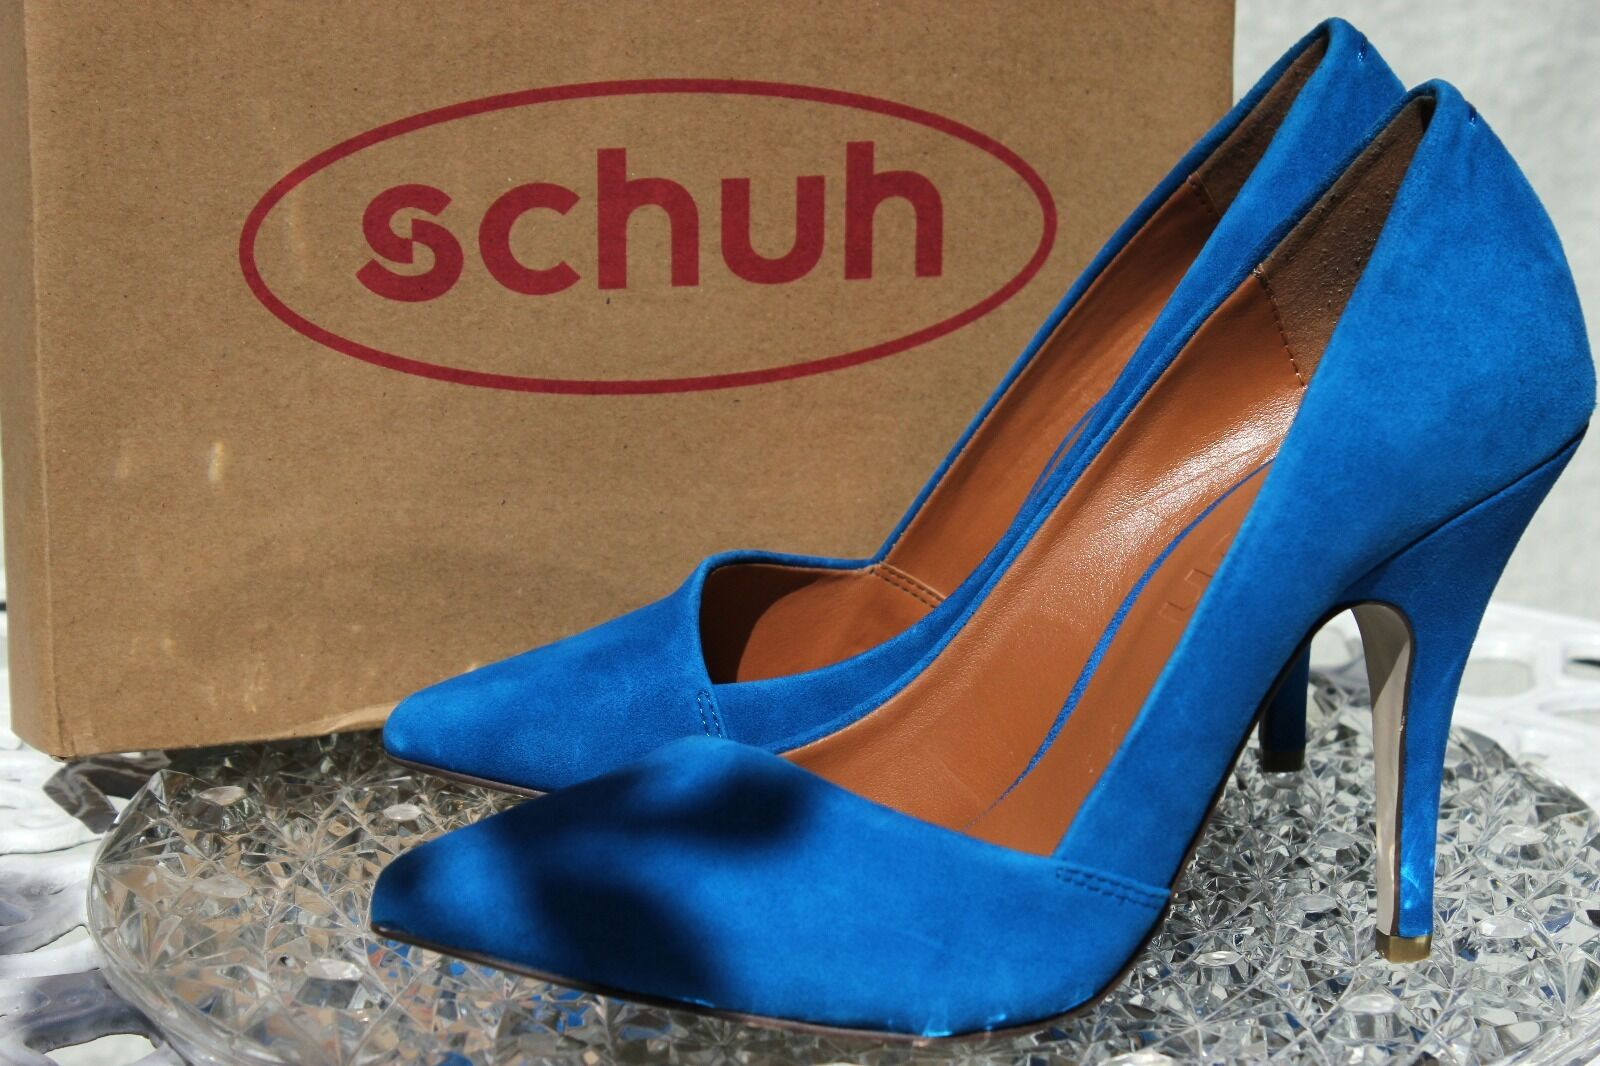 NEU SCHUH Pointed Court Blau Stiletto High Heels Pointed Toe UK 5.5 EU 39 Heels